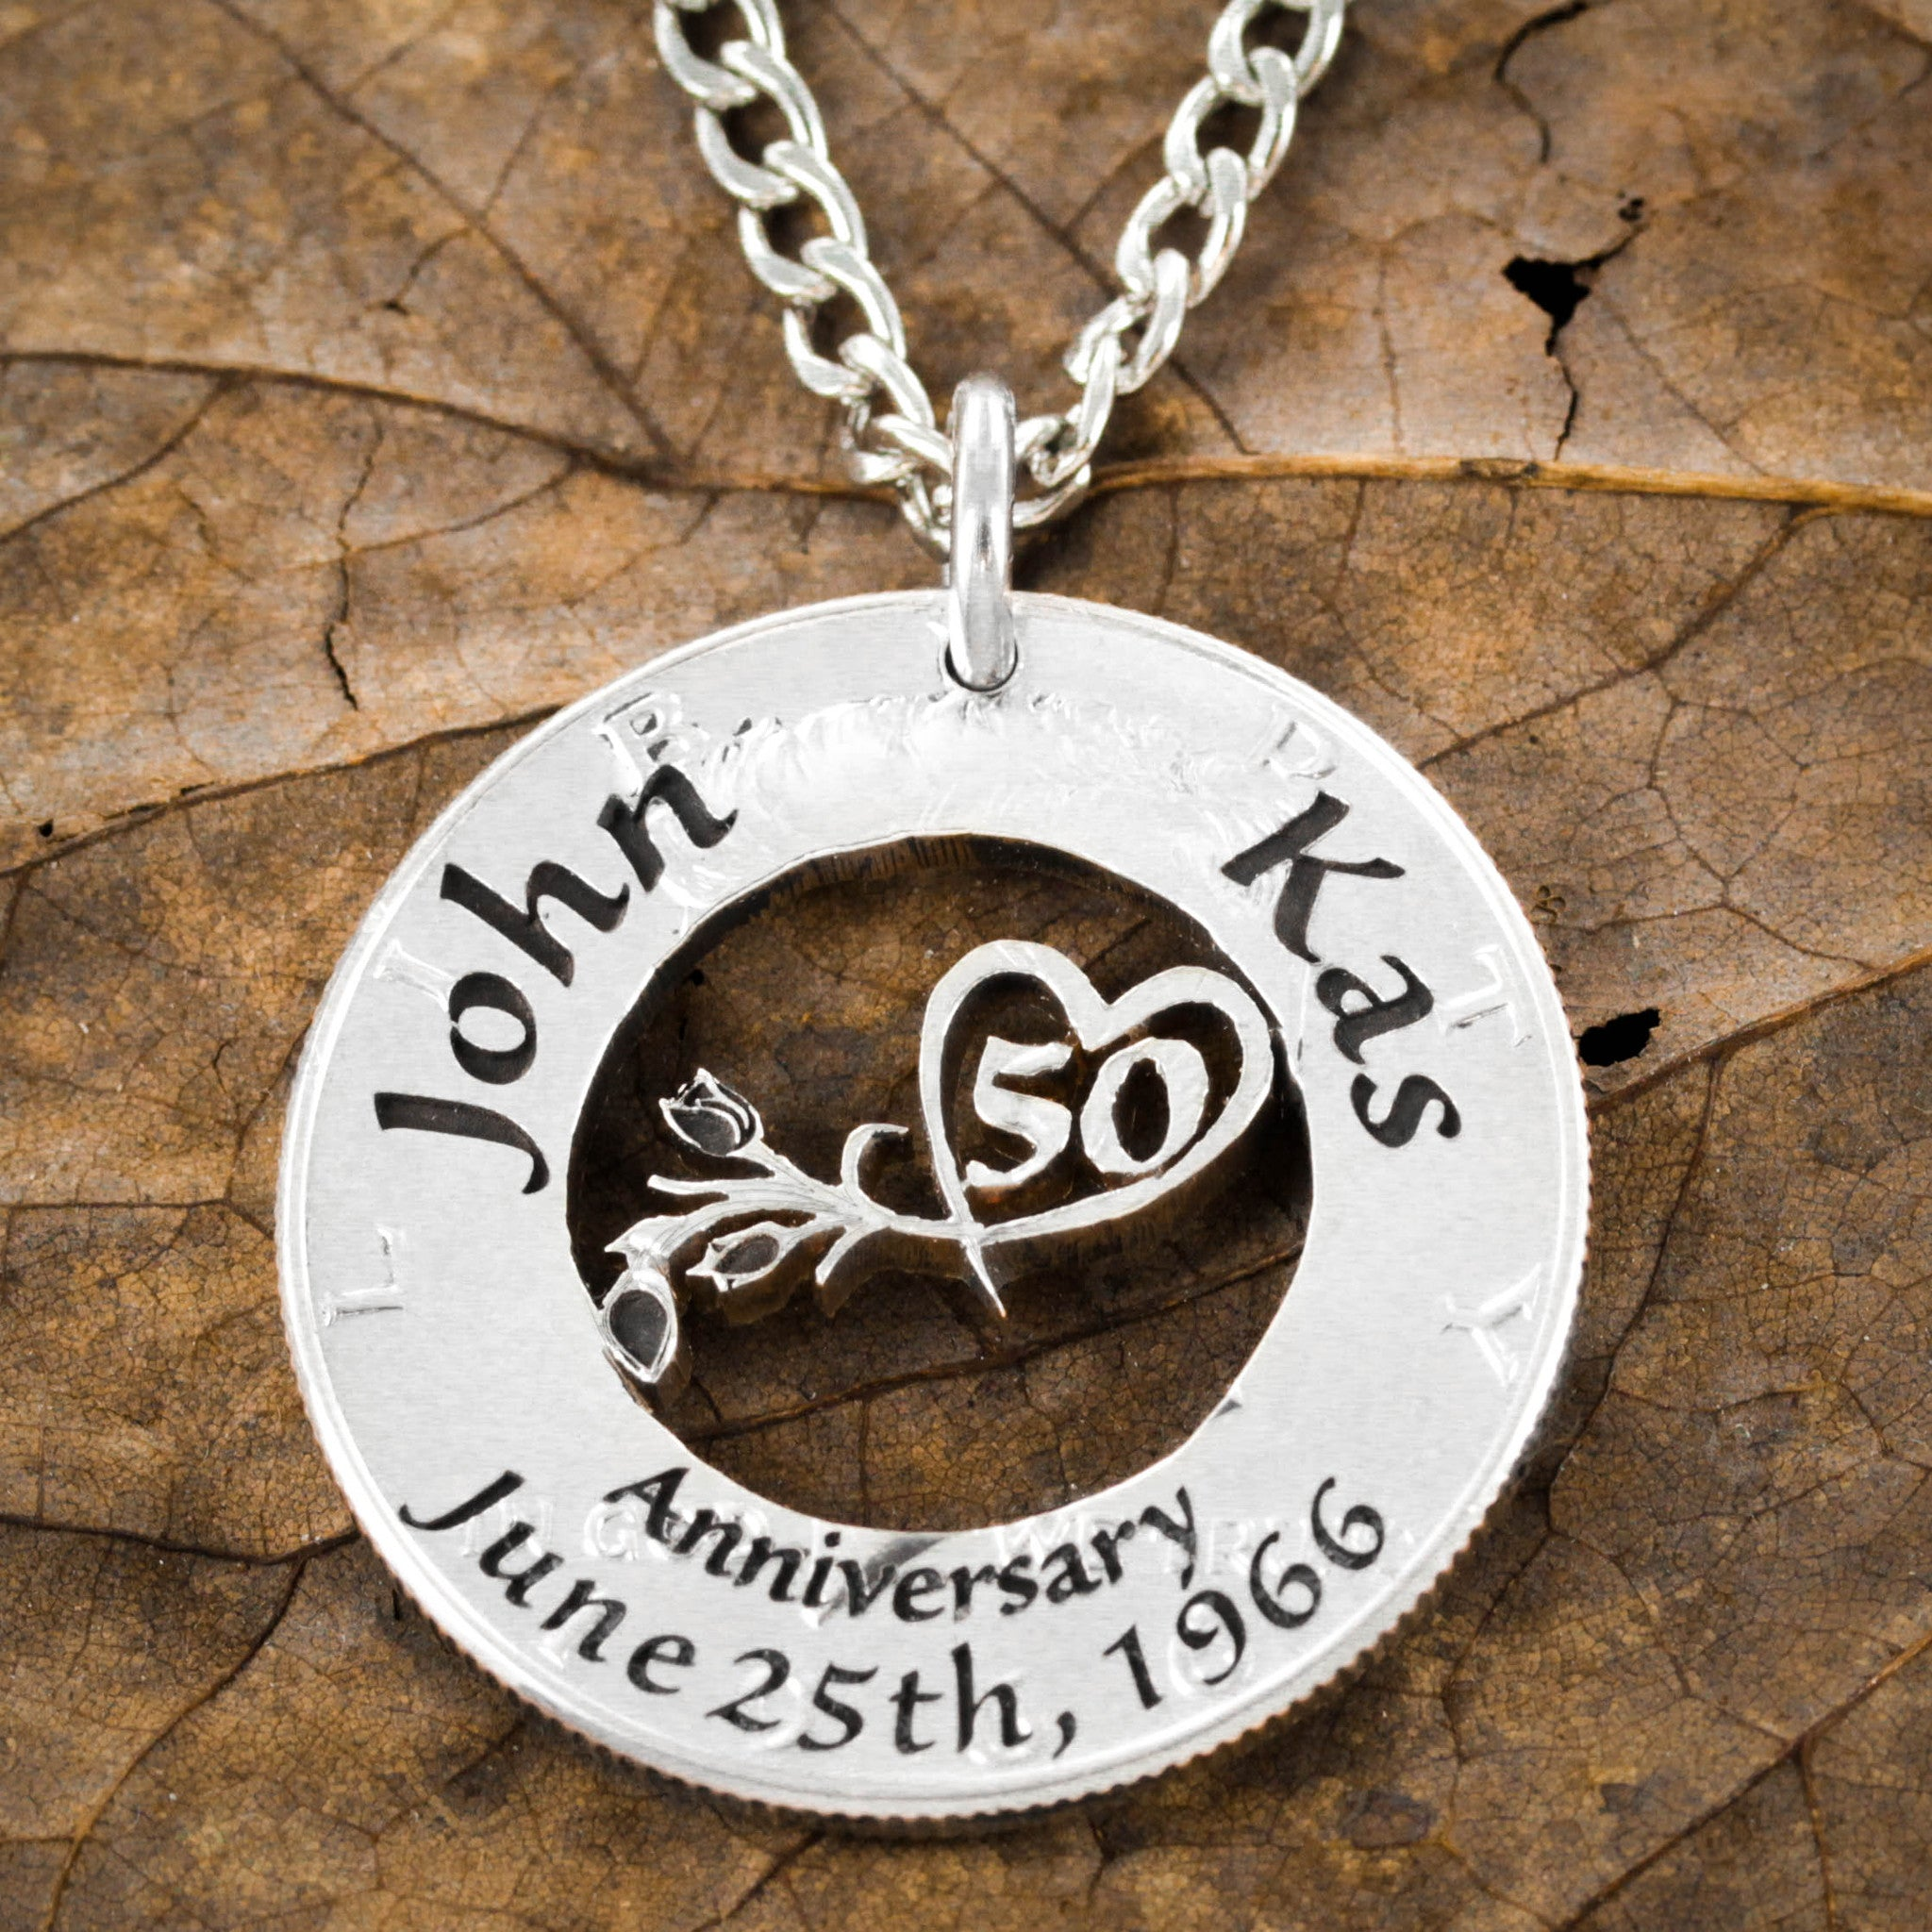 necklace with monogrammed products sterling pendant anniversary in initials date close and custom up mens silver